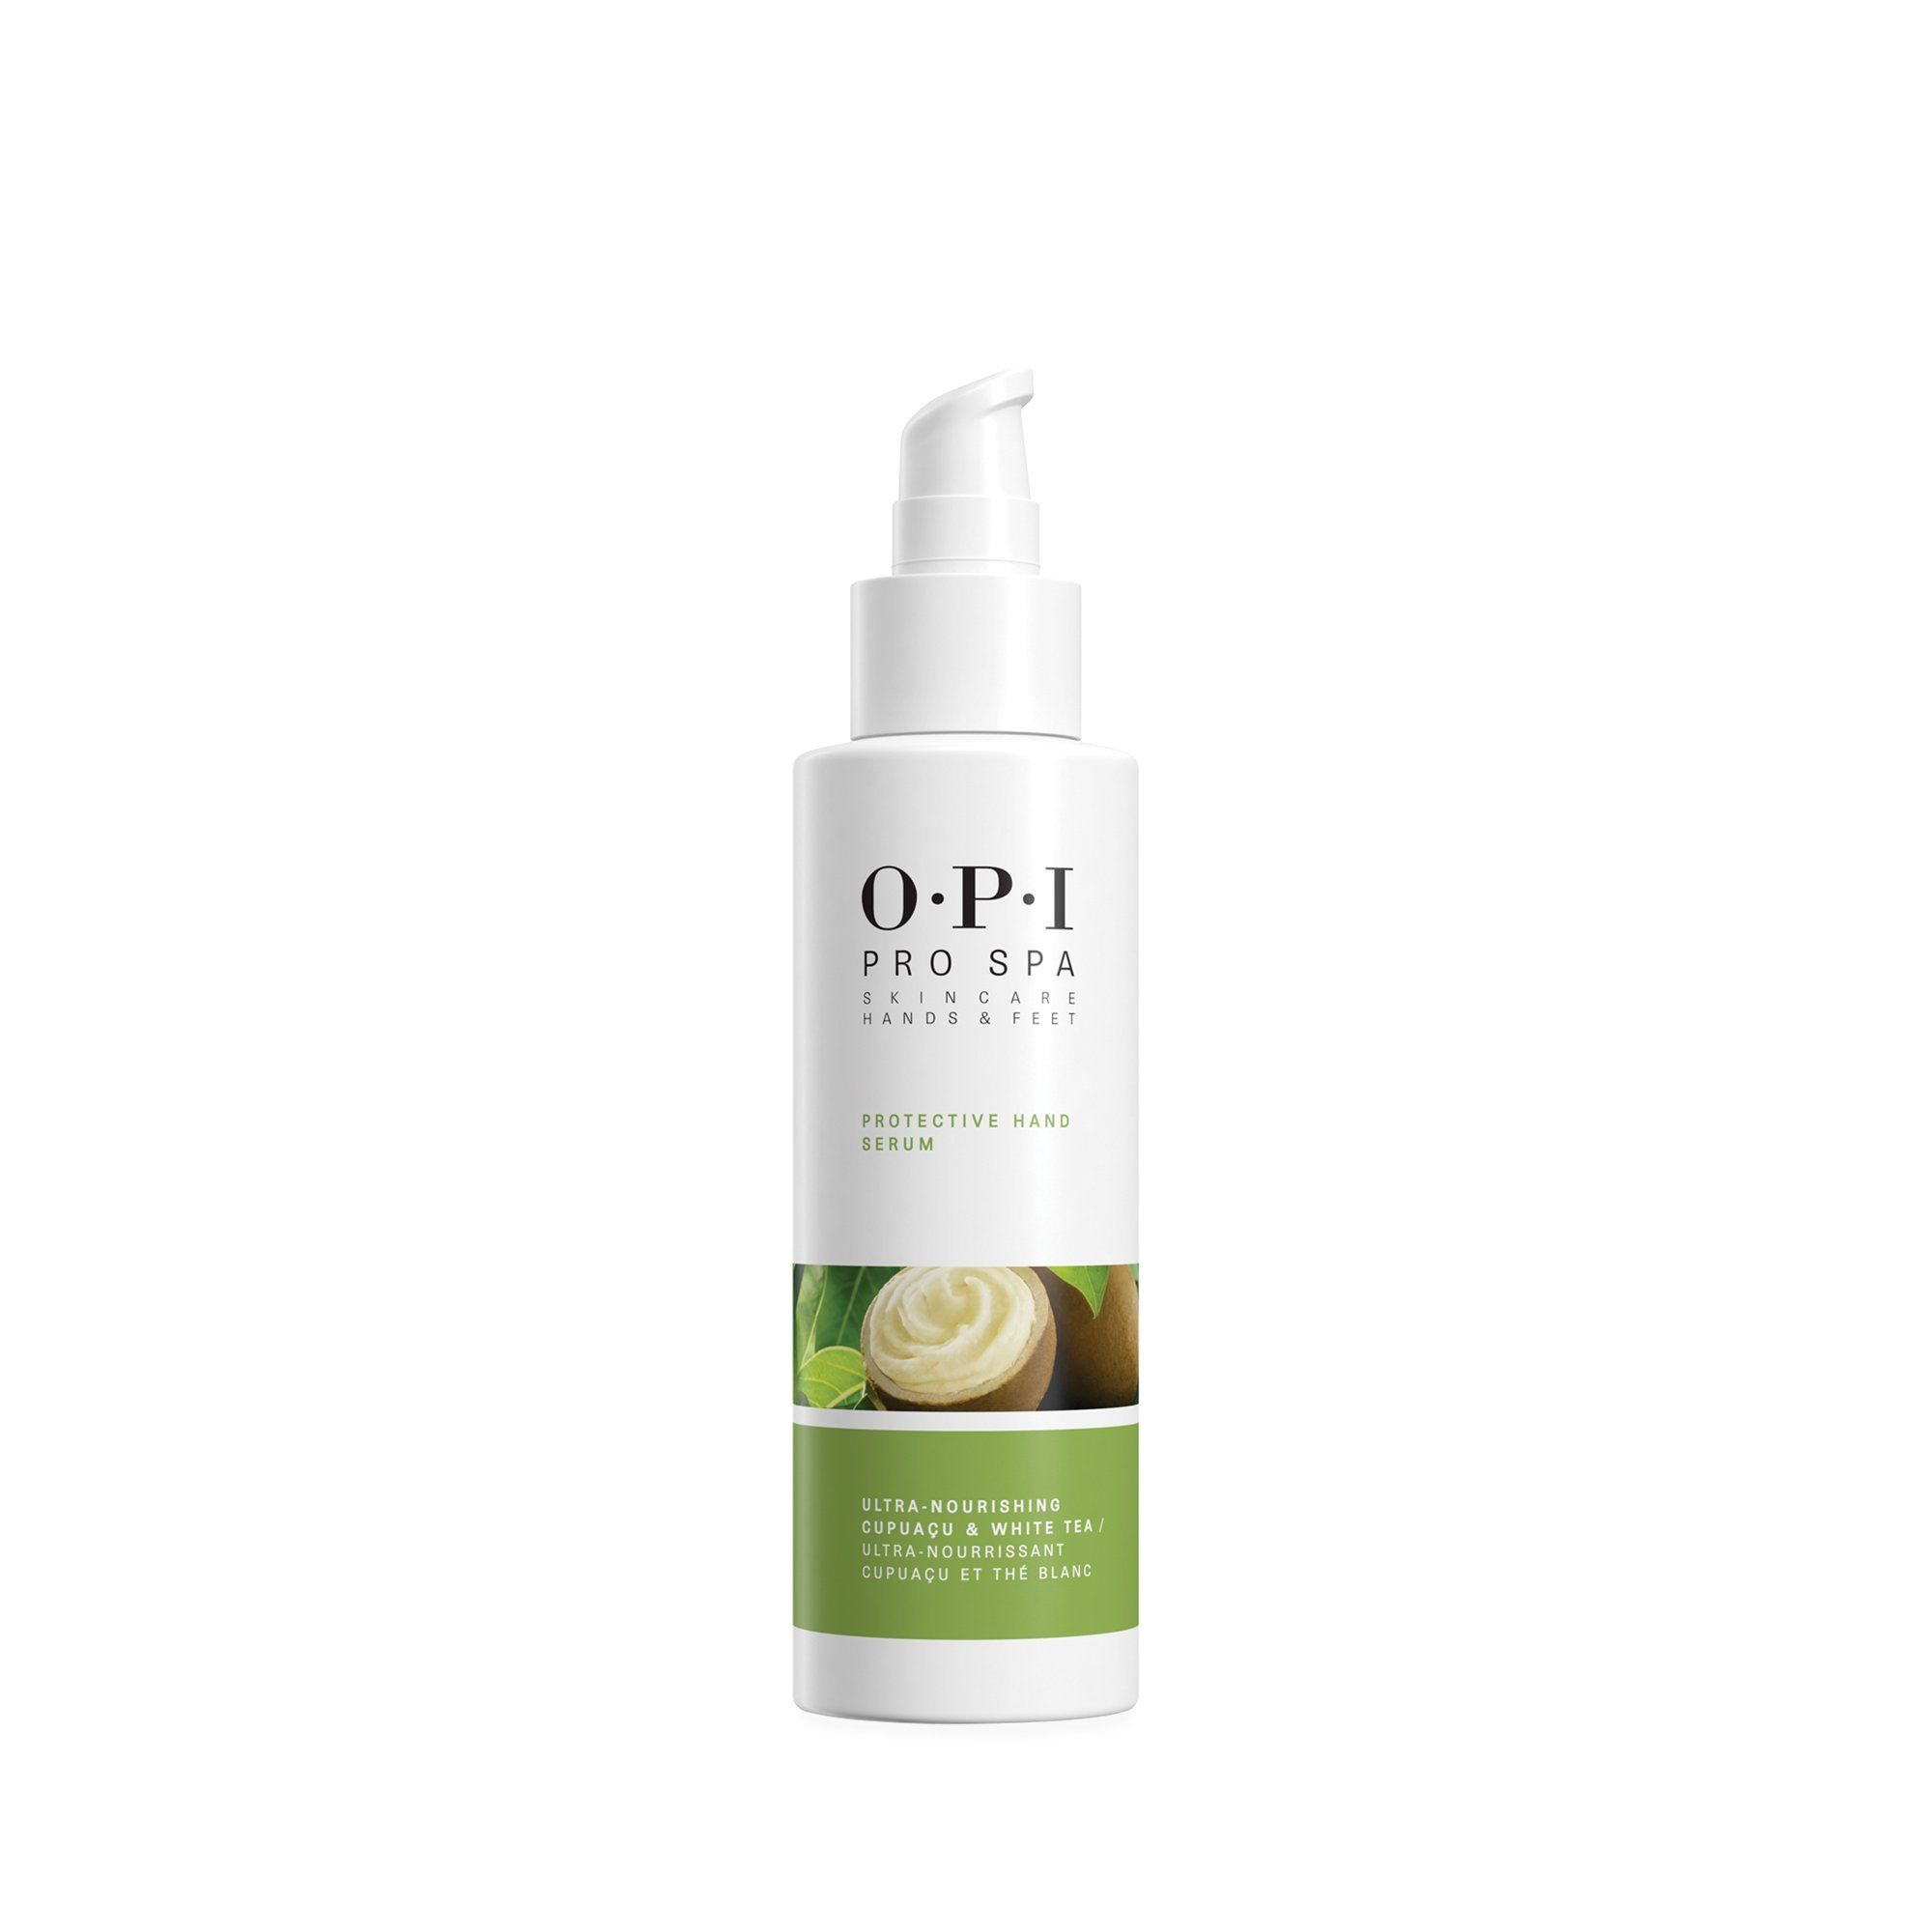 Opi Protective Hand Serum Moisturizer Ceramides Professional Skin Care Products